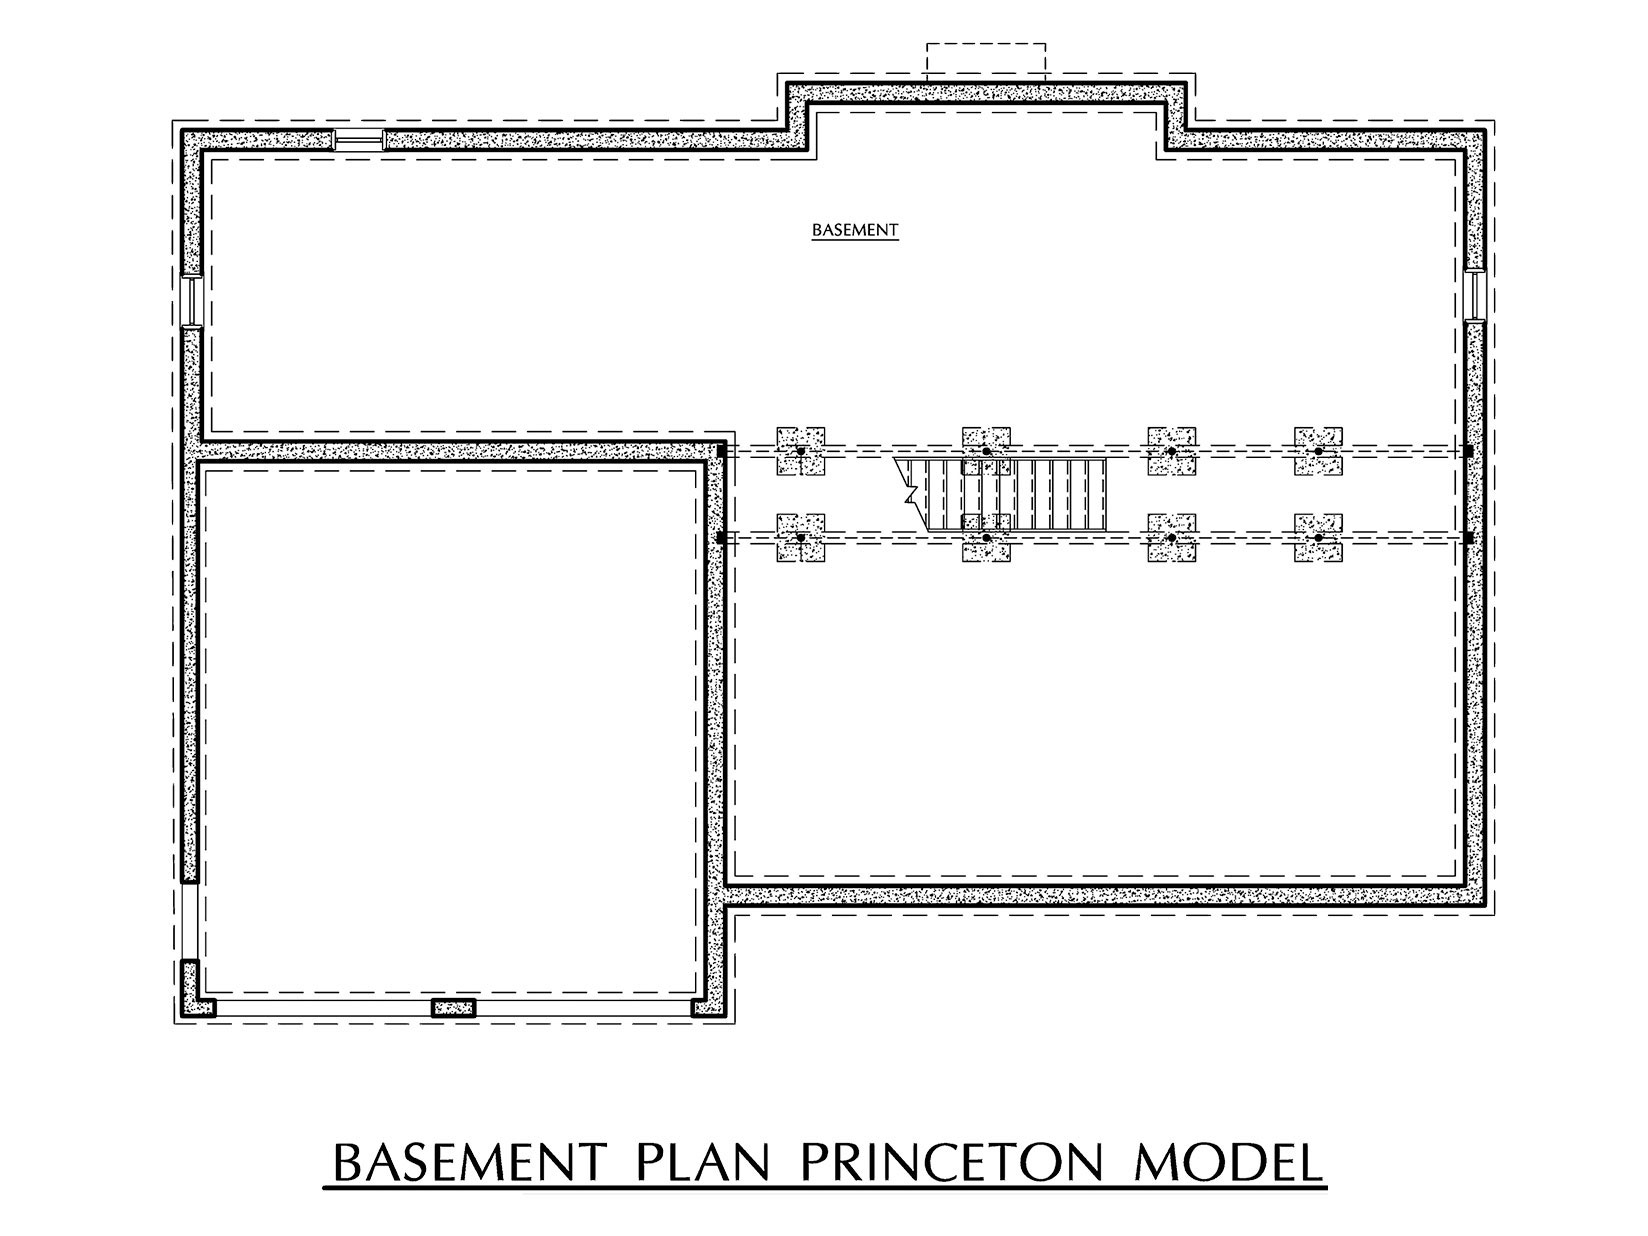 Princeton - Basement Floor Plan